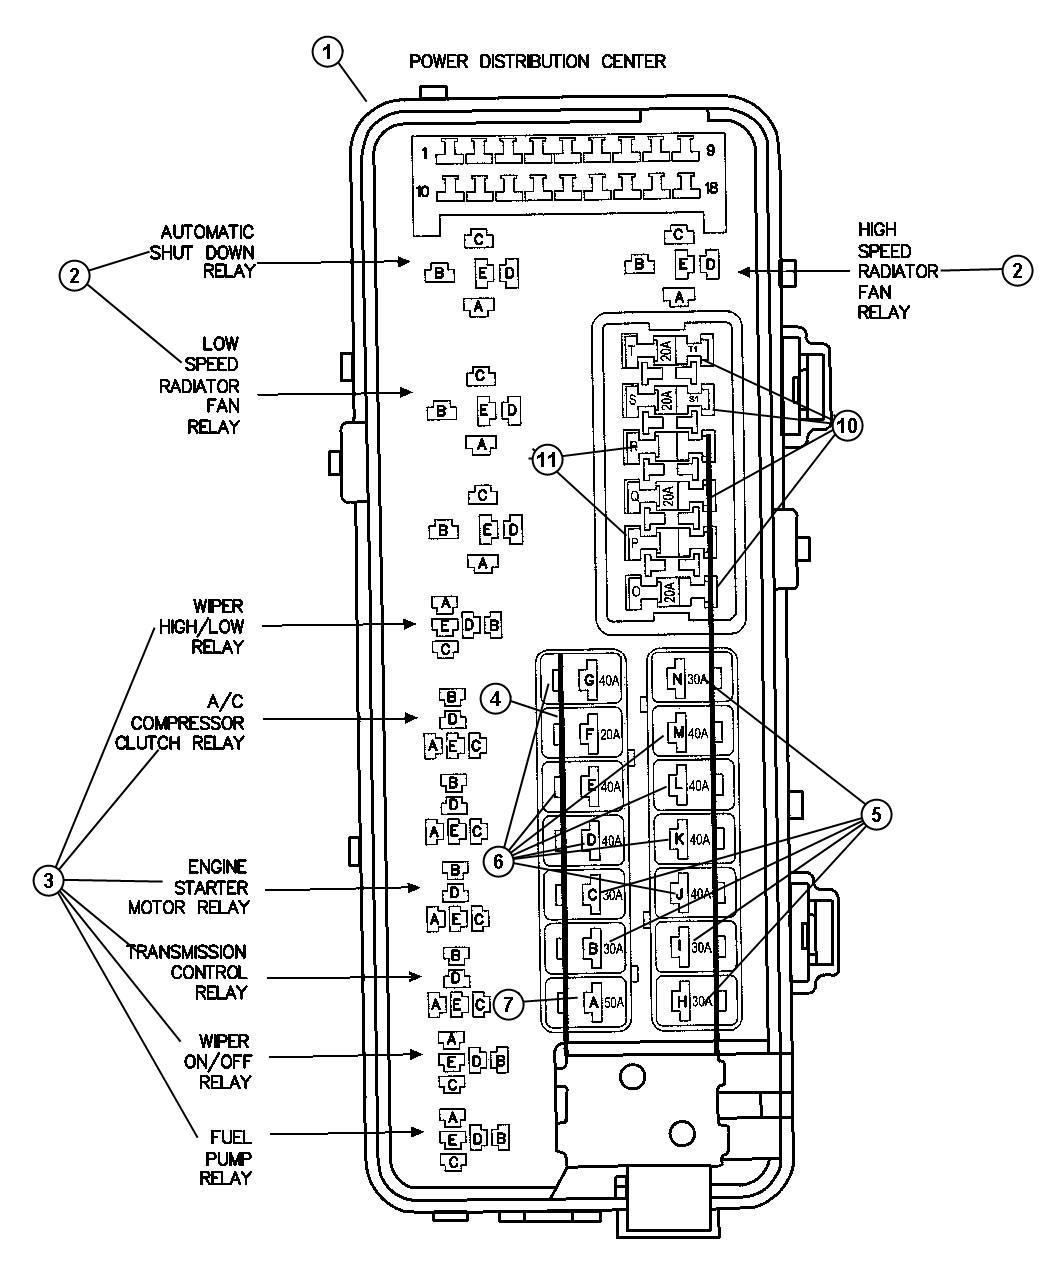 2003 Chrysler Concorde Wiring Diagram Free For You 1997 Power Distribution Center Relays Engine